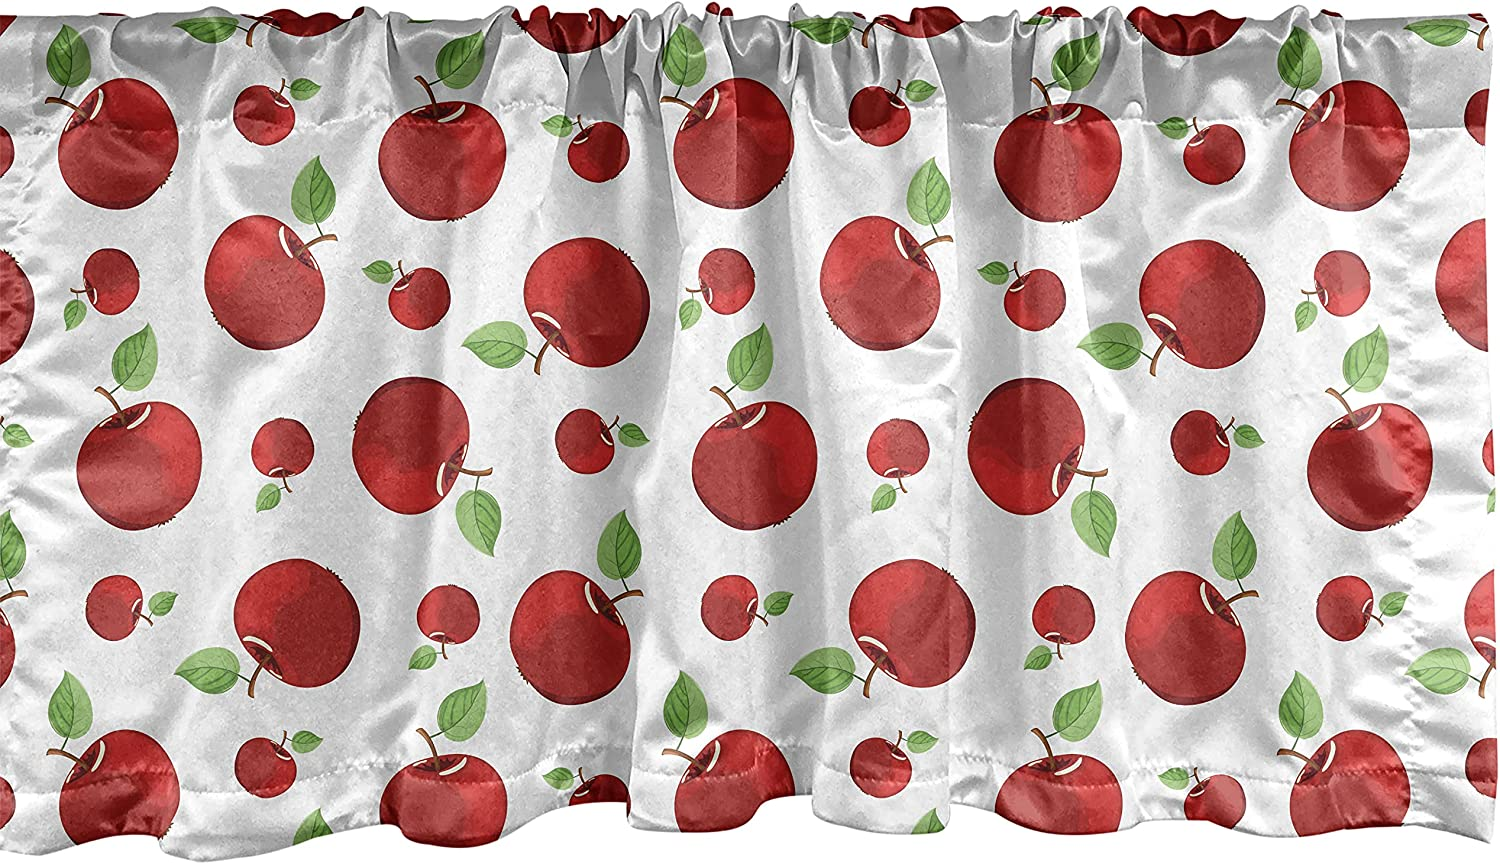 Ambesonne Apple Window Valance, Vivid Colored Cartoon Style Ripe Red Apples Vitamins Taste Healthy Food, Curtain Valance for Kitchen Bedroom Decor with Rod Pocket, 54